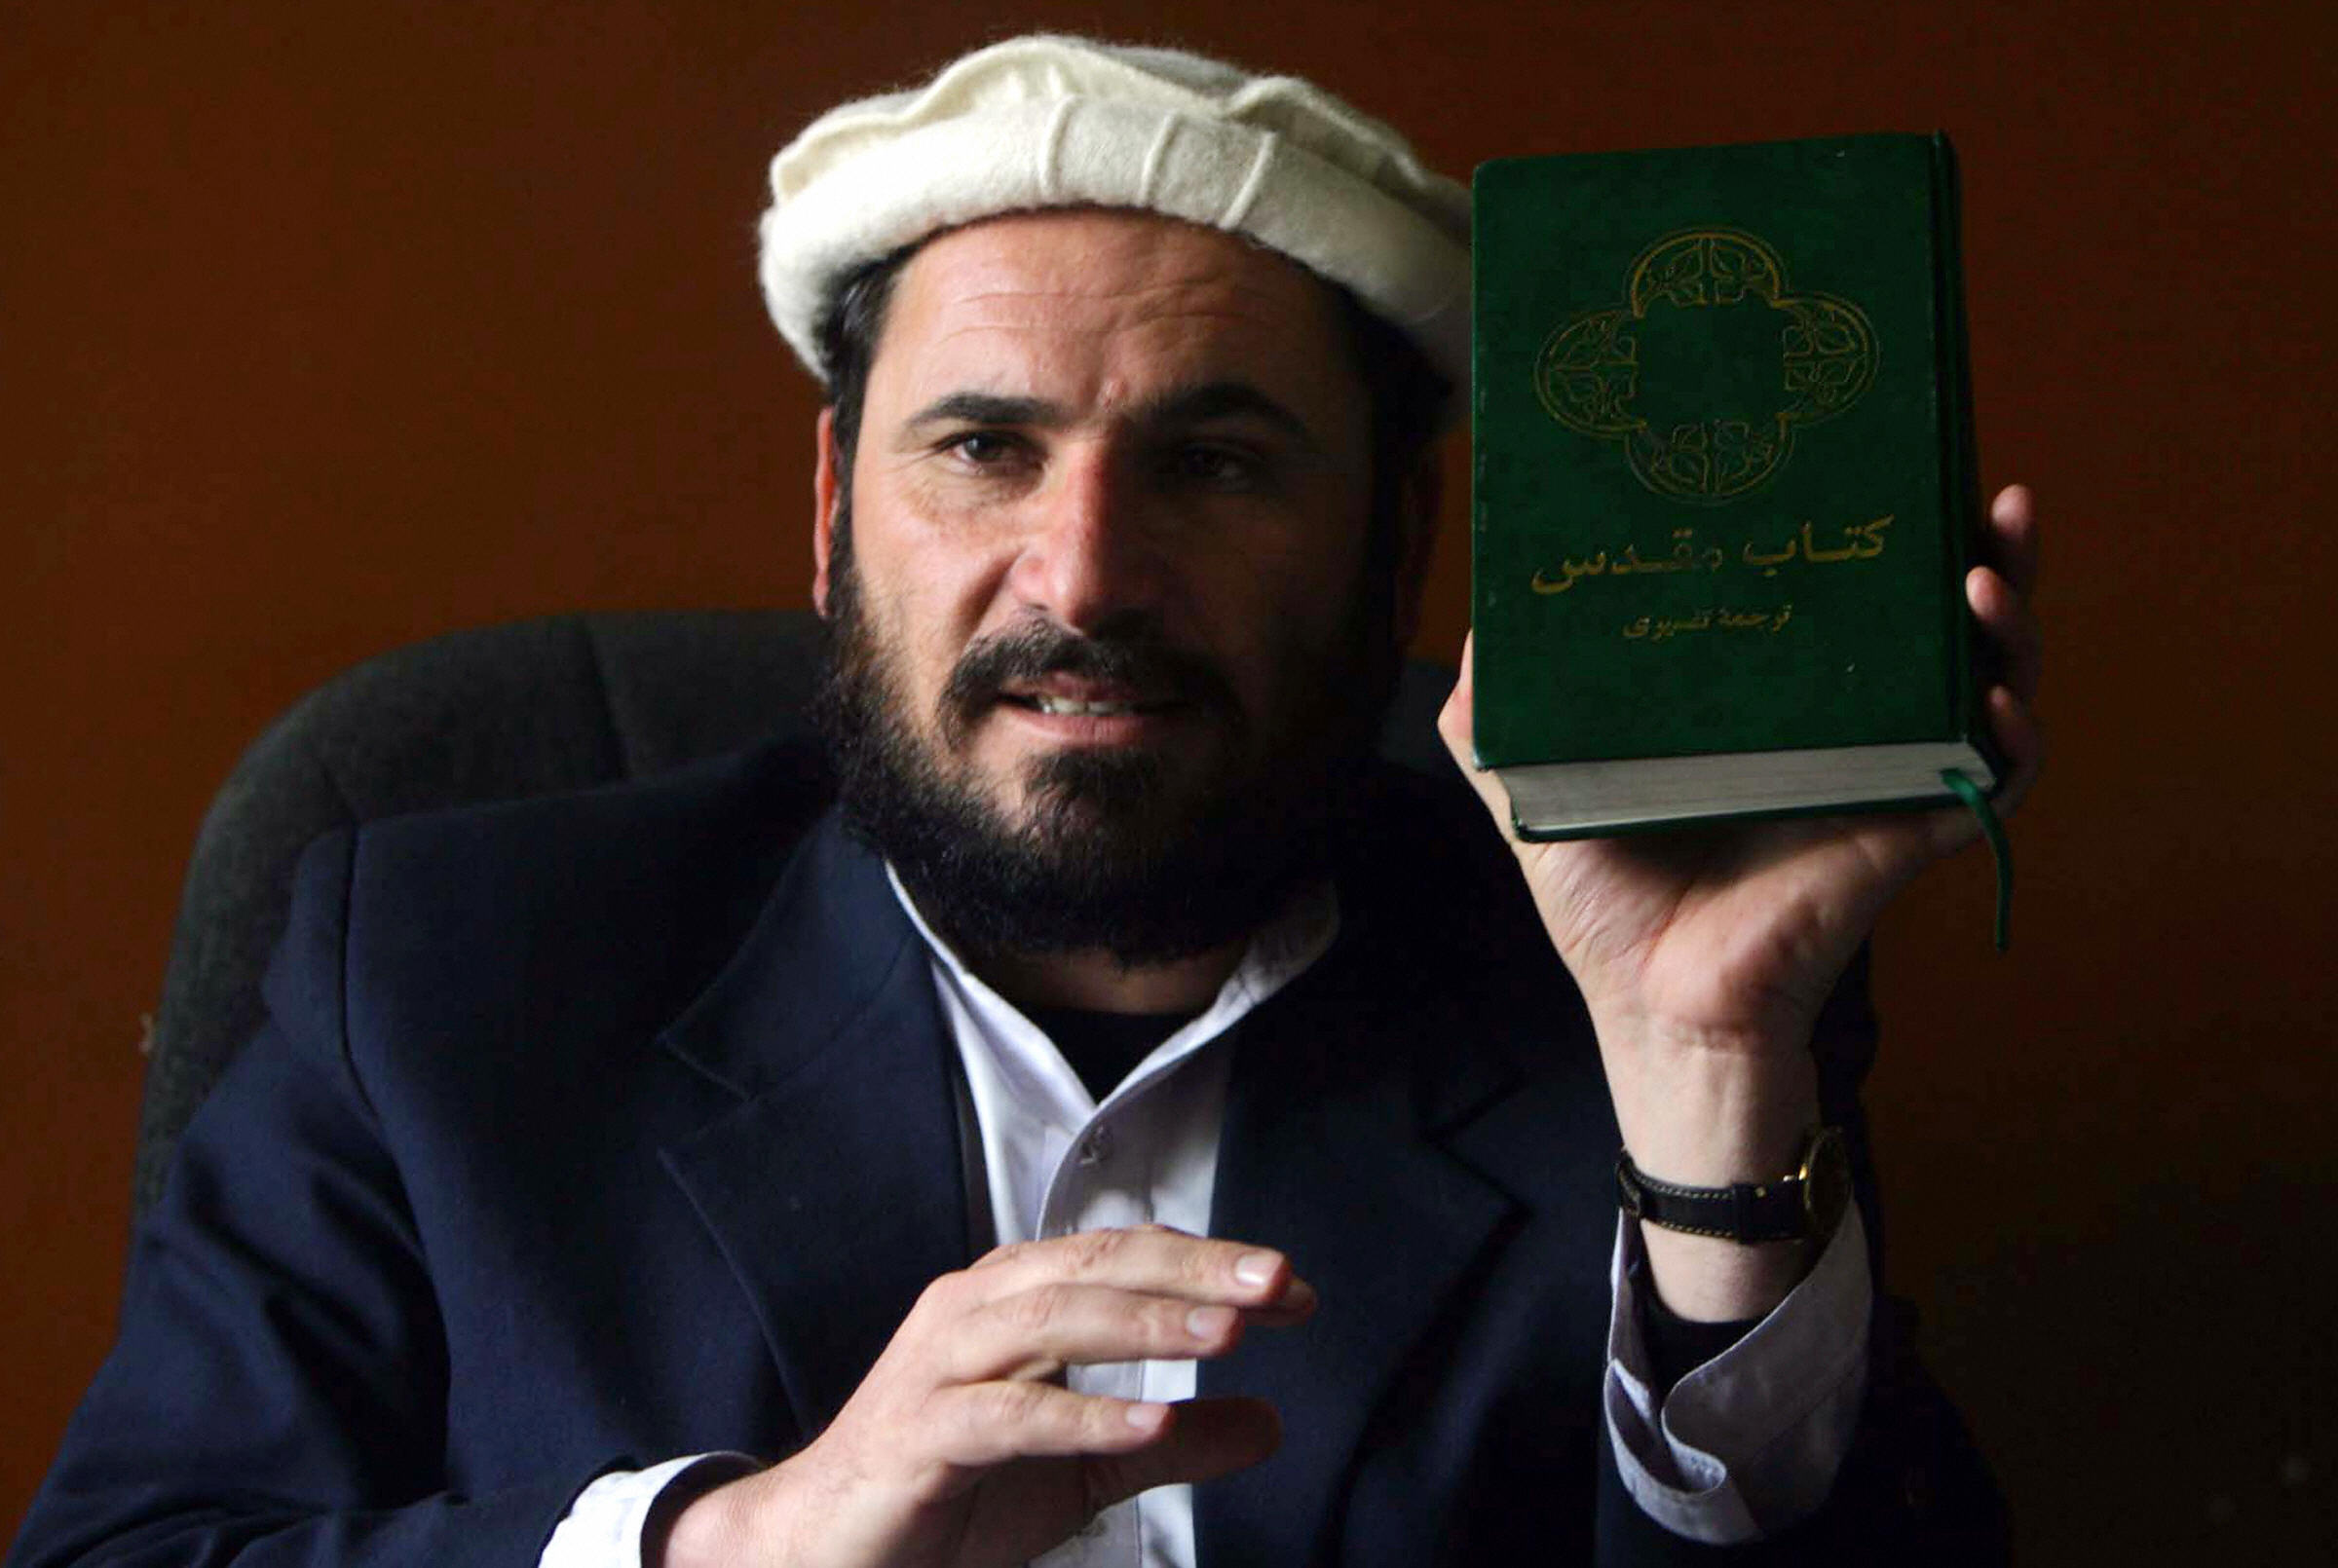 Kabul, AFGHANISTAN: Afghan supreme court judge Ansarullah Mawlavezada holds a Bible in Kabul, 19 March 2006. International pressure is mounting on Afghanistan over the case of a man who faces the death penalty for converting from Islam to Christianity. The trial of Abdul Rahman is being billed as a test of freedom for key US ally Afghanistan, where religion retains a tight grip on society four years after the toppling of the fundamentalist Taliban regime.Washington says it is watching closely how Kabul deals with Rahman, 41, who is believed to be the first convert accused in Afghanistan under strict Islamic Sharia law for refusing to become Muslim again. AFP PHOTO/ Gul Badeen (Photo credit should read GUL BADEEN/AFP via Getty Images)